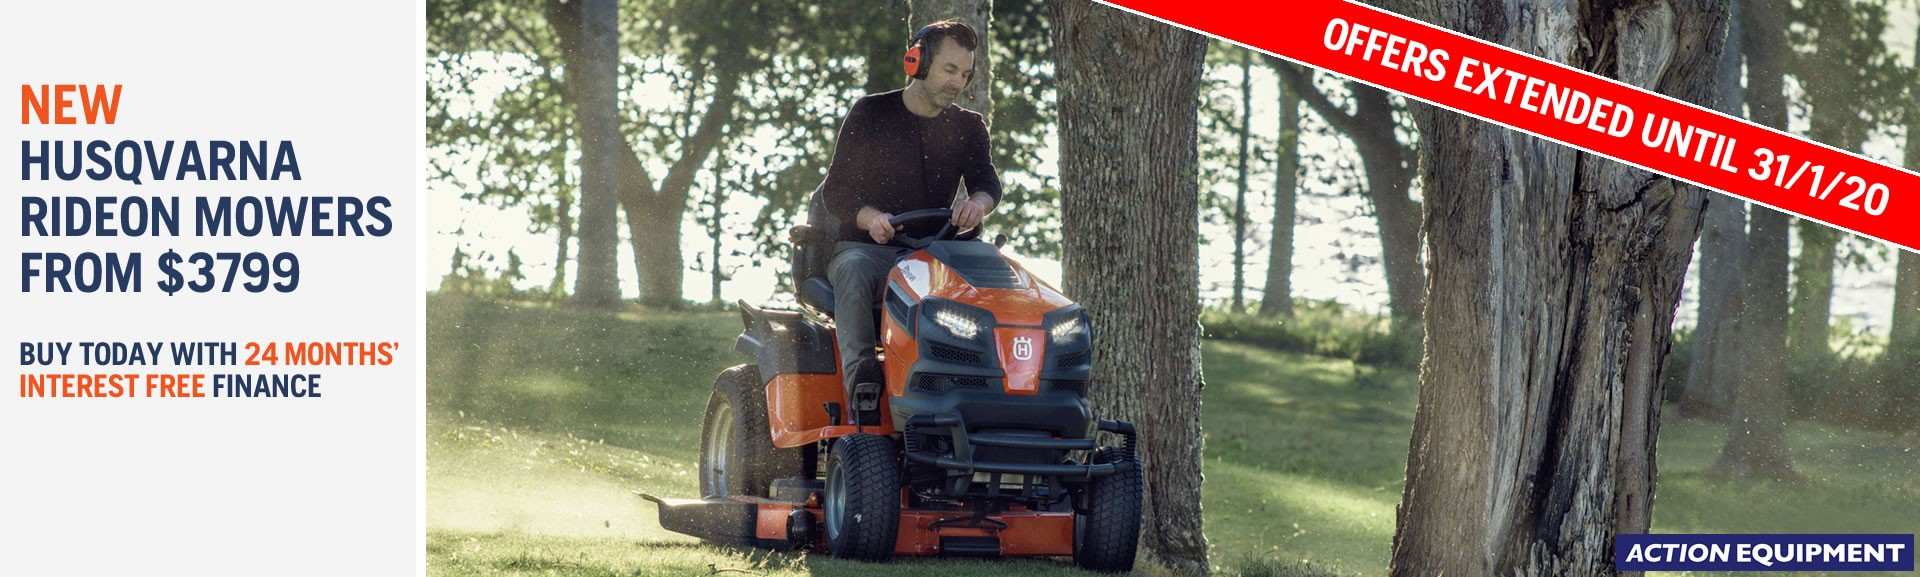 Husqvarna mower finance